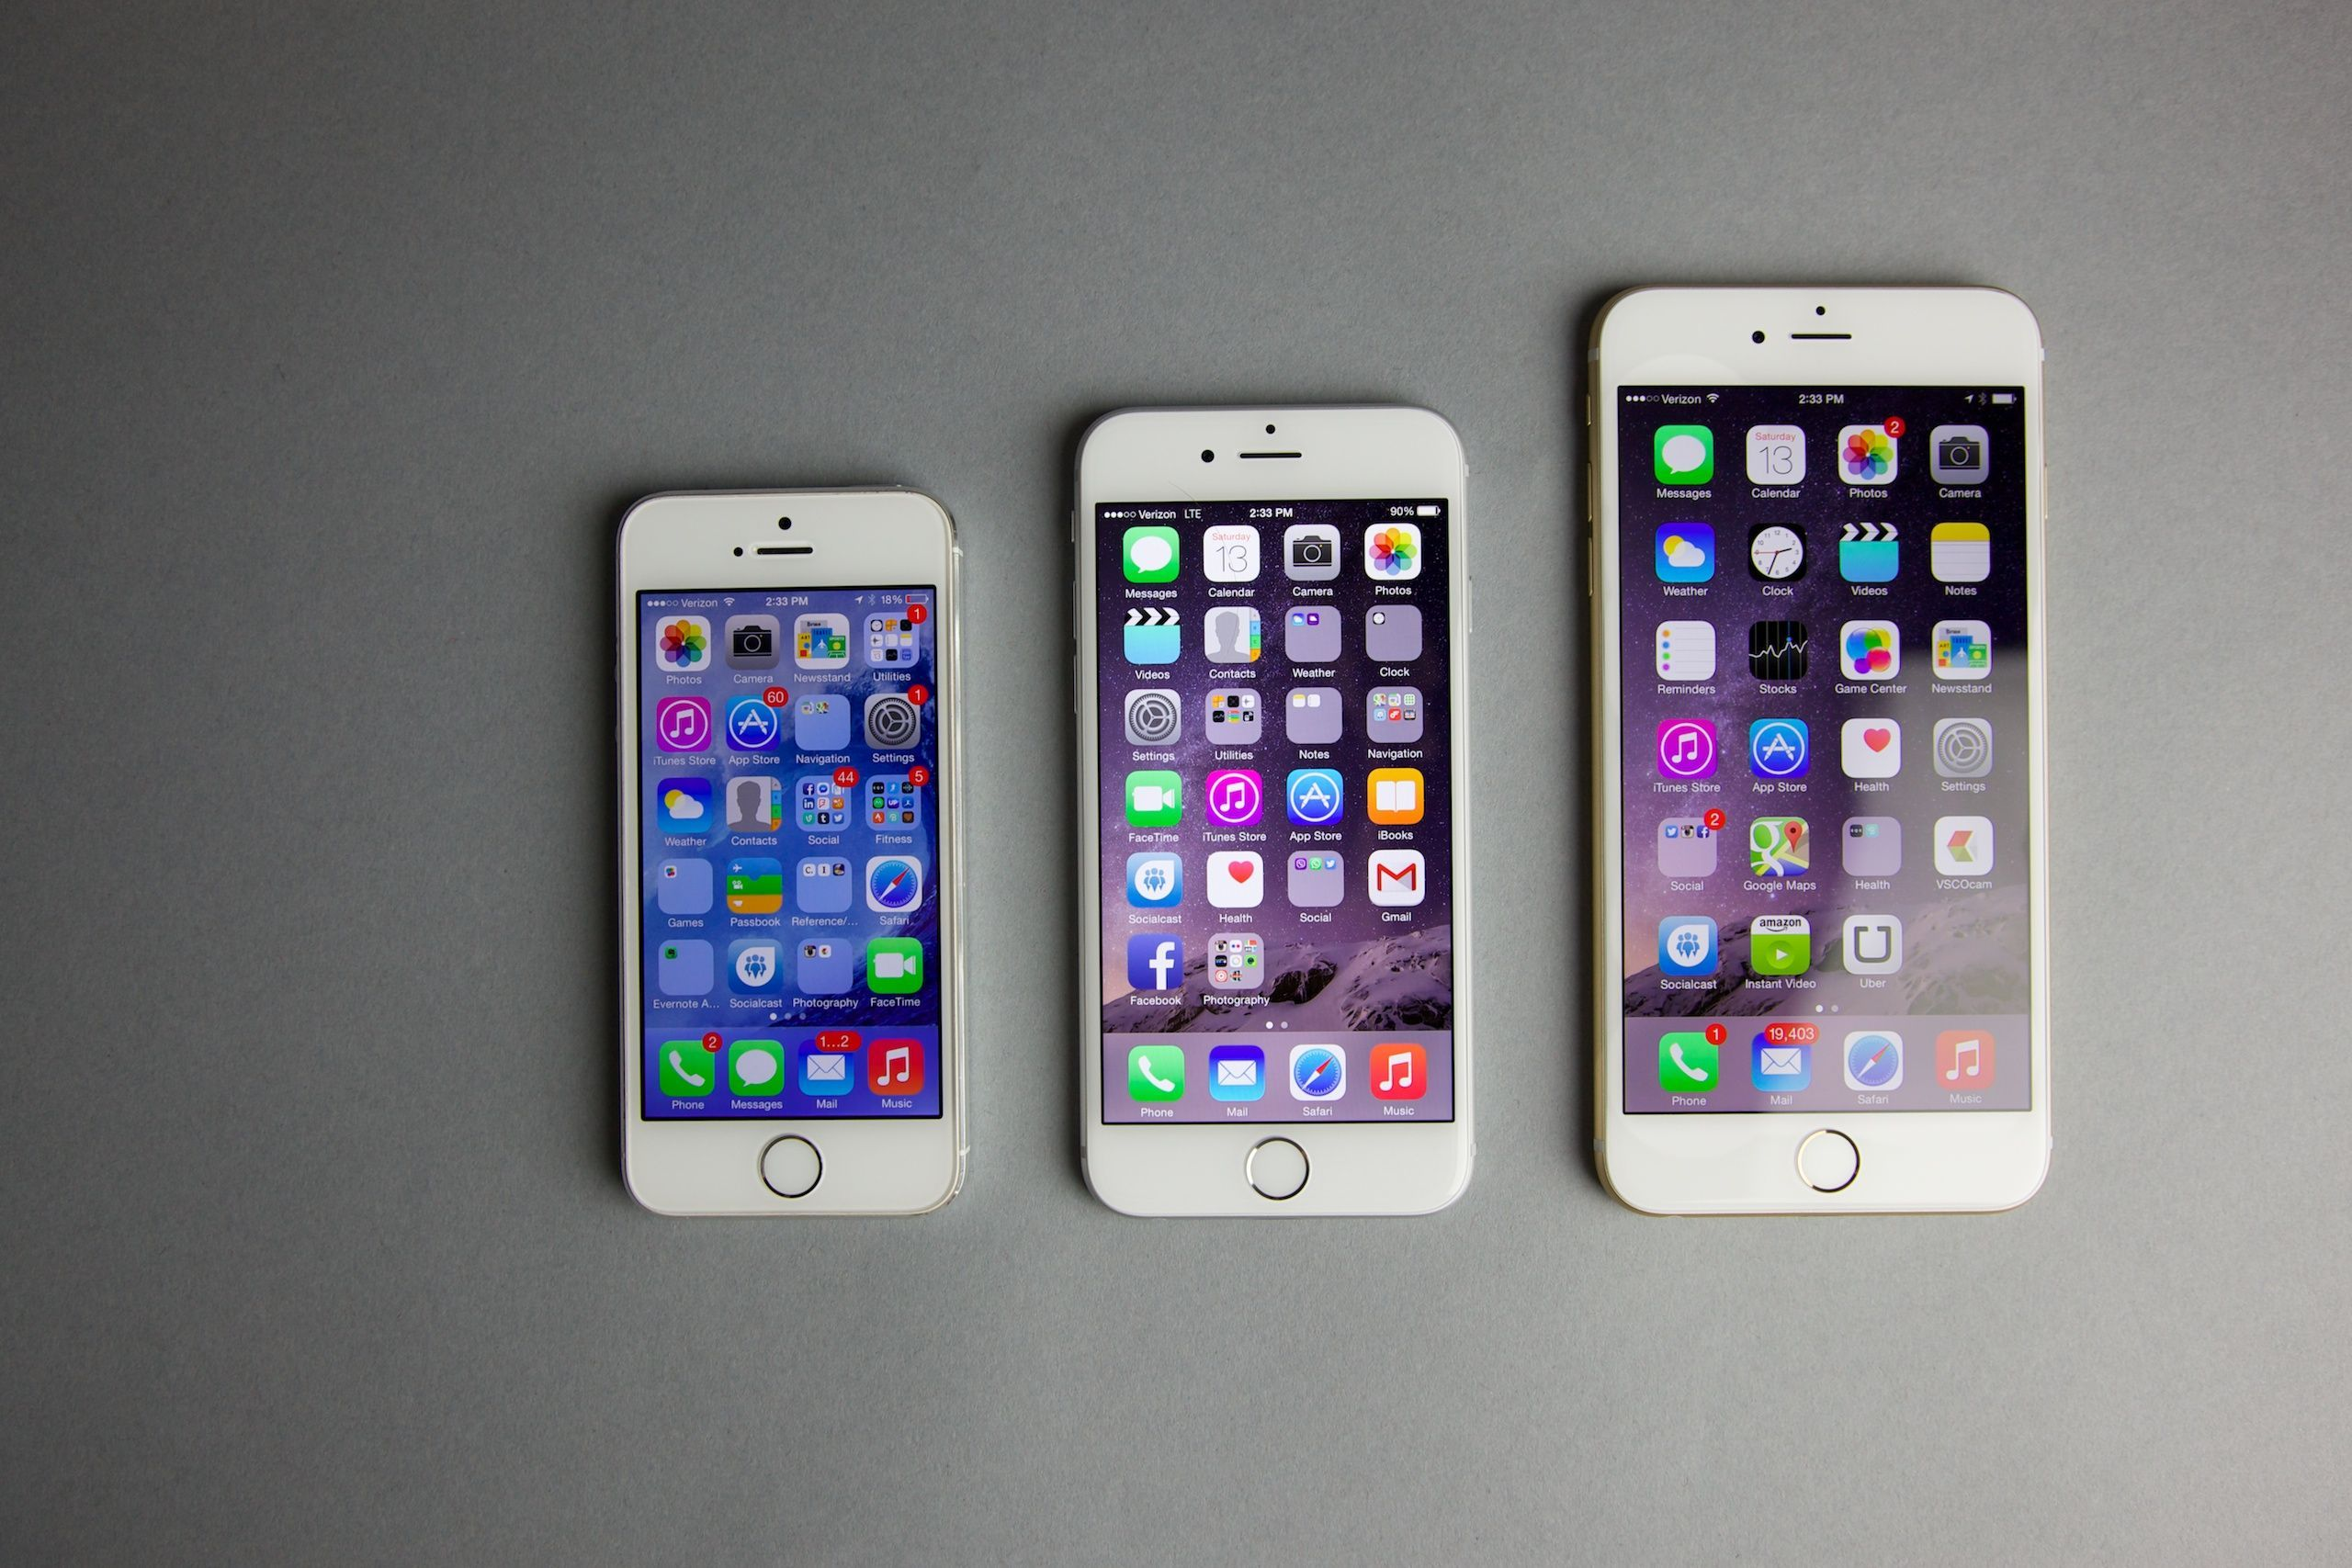 Iphone 5s Vs Iphone 6 Vs Iphone 6 Plus Iphone Iphone Features Iphone 6